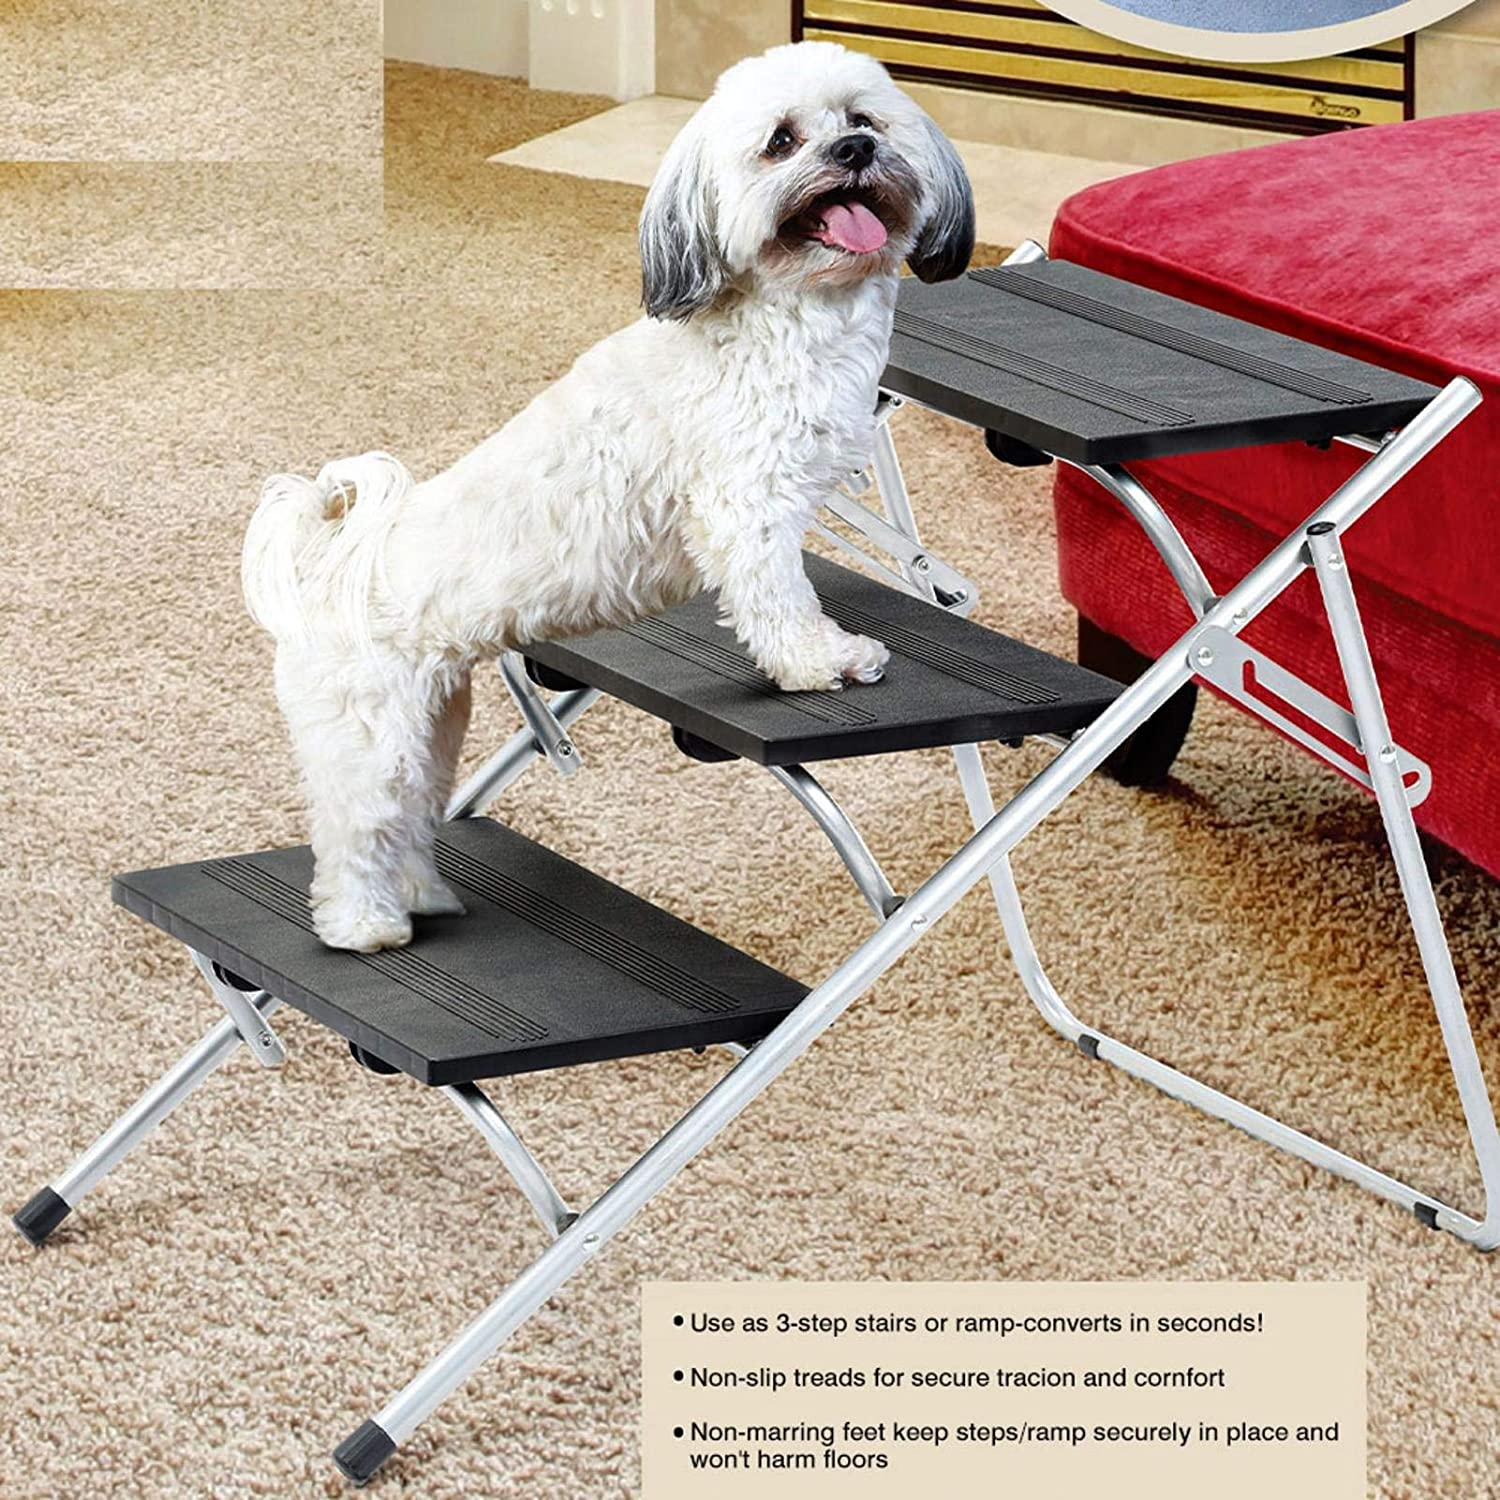 Car Dog Steps,Dog Stairs for Large Dog,Lightweight Portable Folding Pet Ramp with Nonslip Surface for High Beds Supports 100 Lbs Cars and SUV Trucks